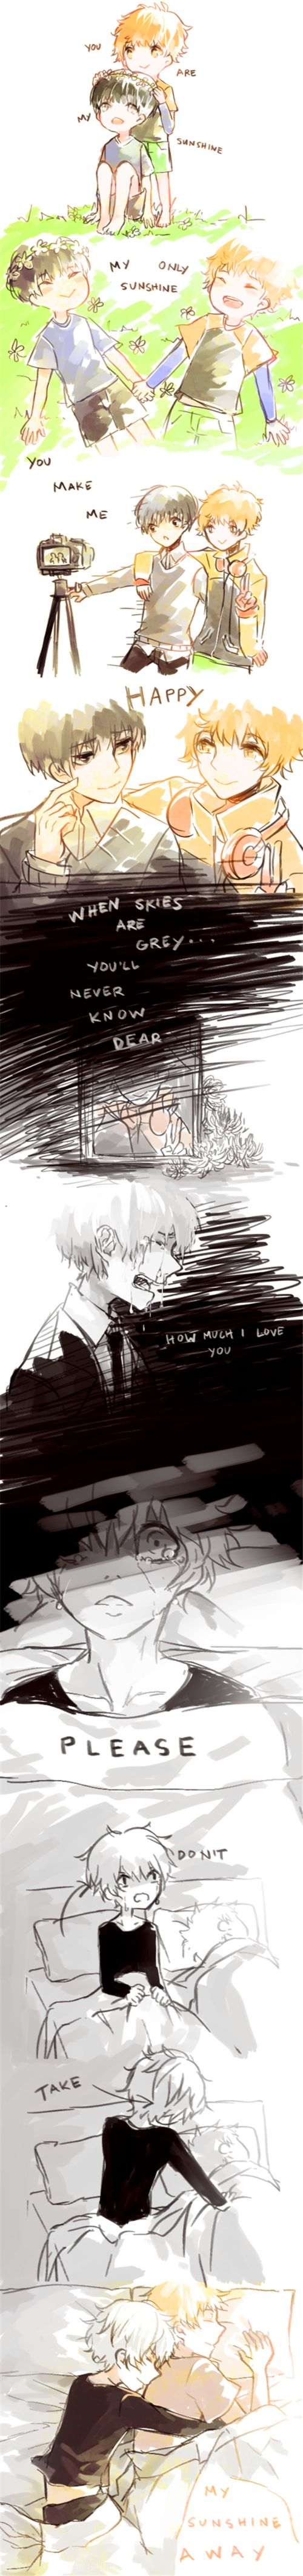 Hide and Kaneki. ^^<<I HAD A MENTAL BREAK DOWN AT SCHOOL!!! THIS IS TOO DEPRESSING!!! <<<---- TT_TT